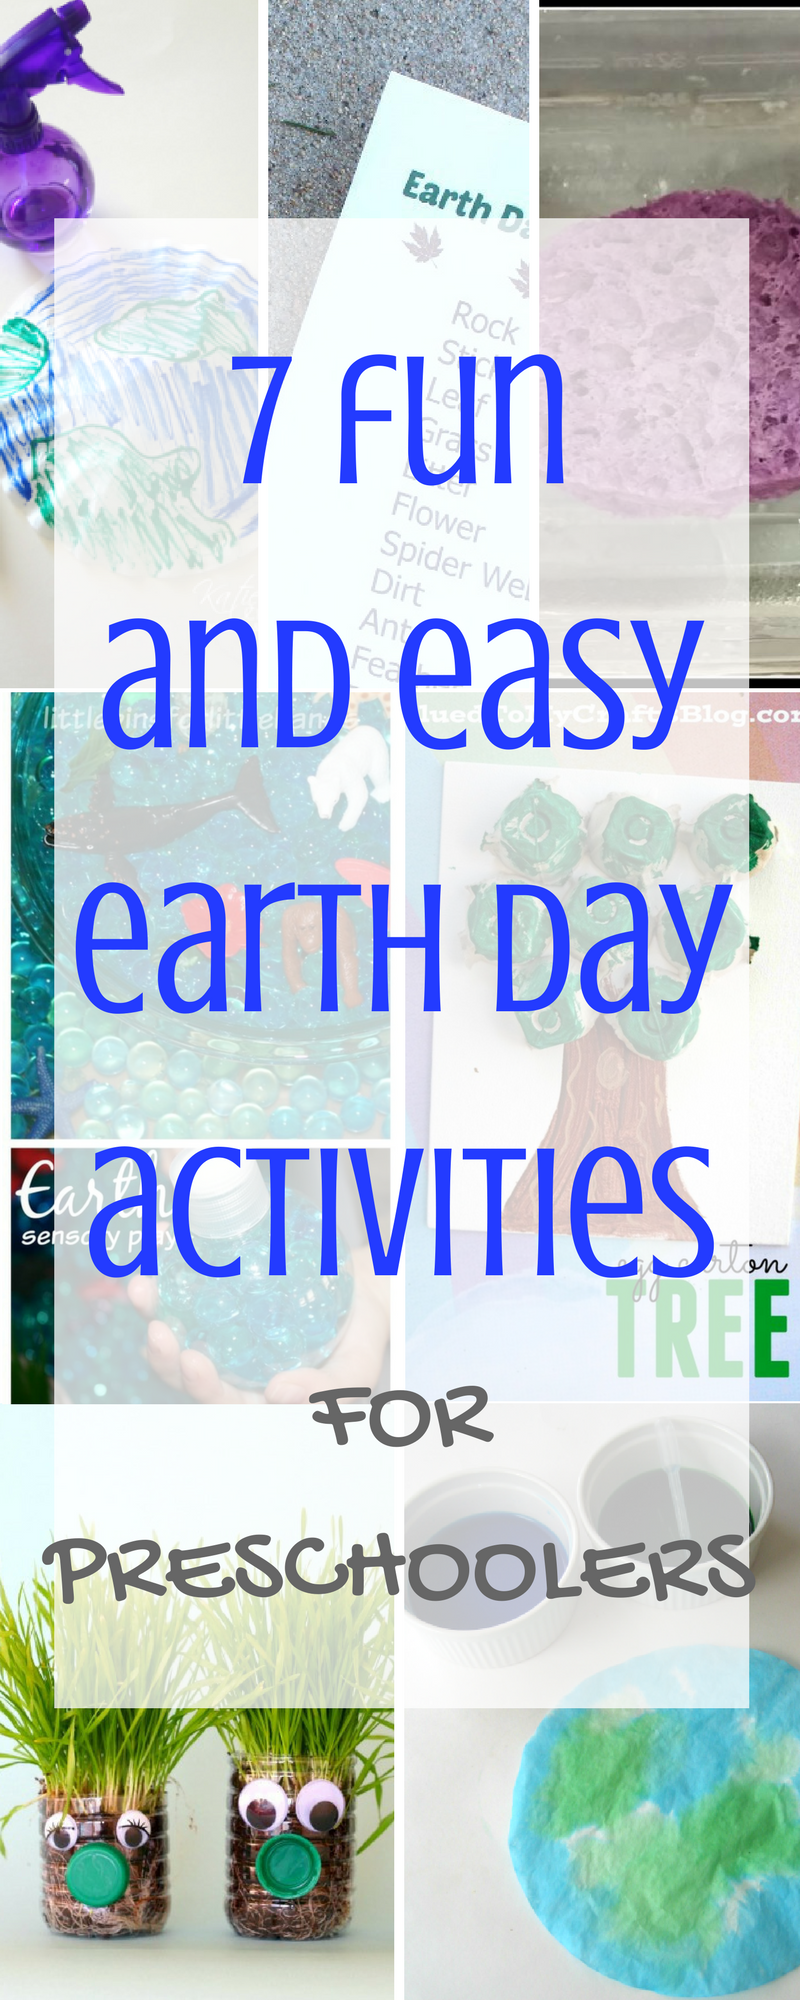 earth day activities for schools, earth day activities for adults, earth day activities for kindergarten, earth day activities for preschoolers, free earth day activities, school wide earth day activities, earth day activities for elementary students